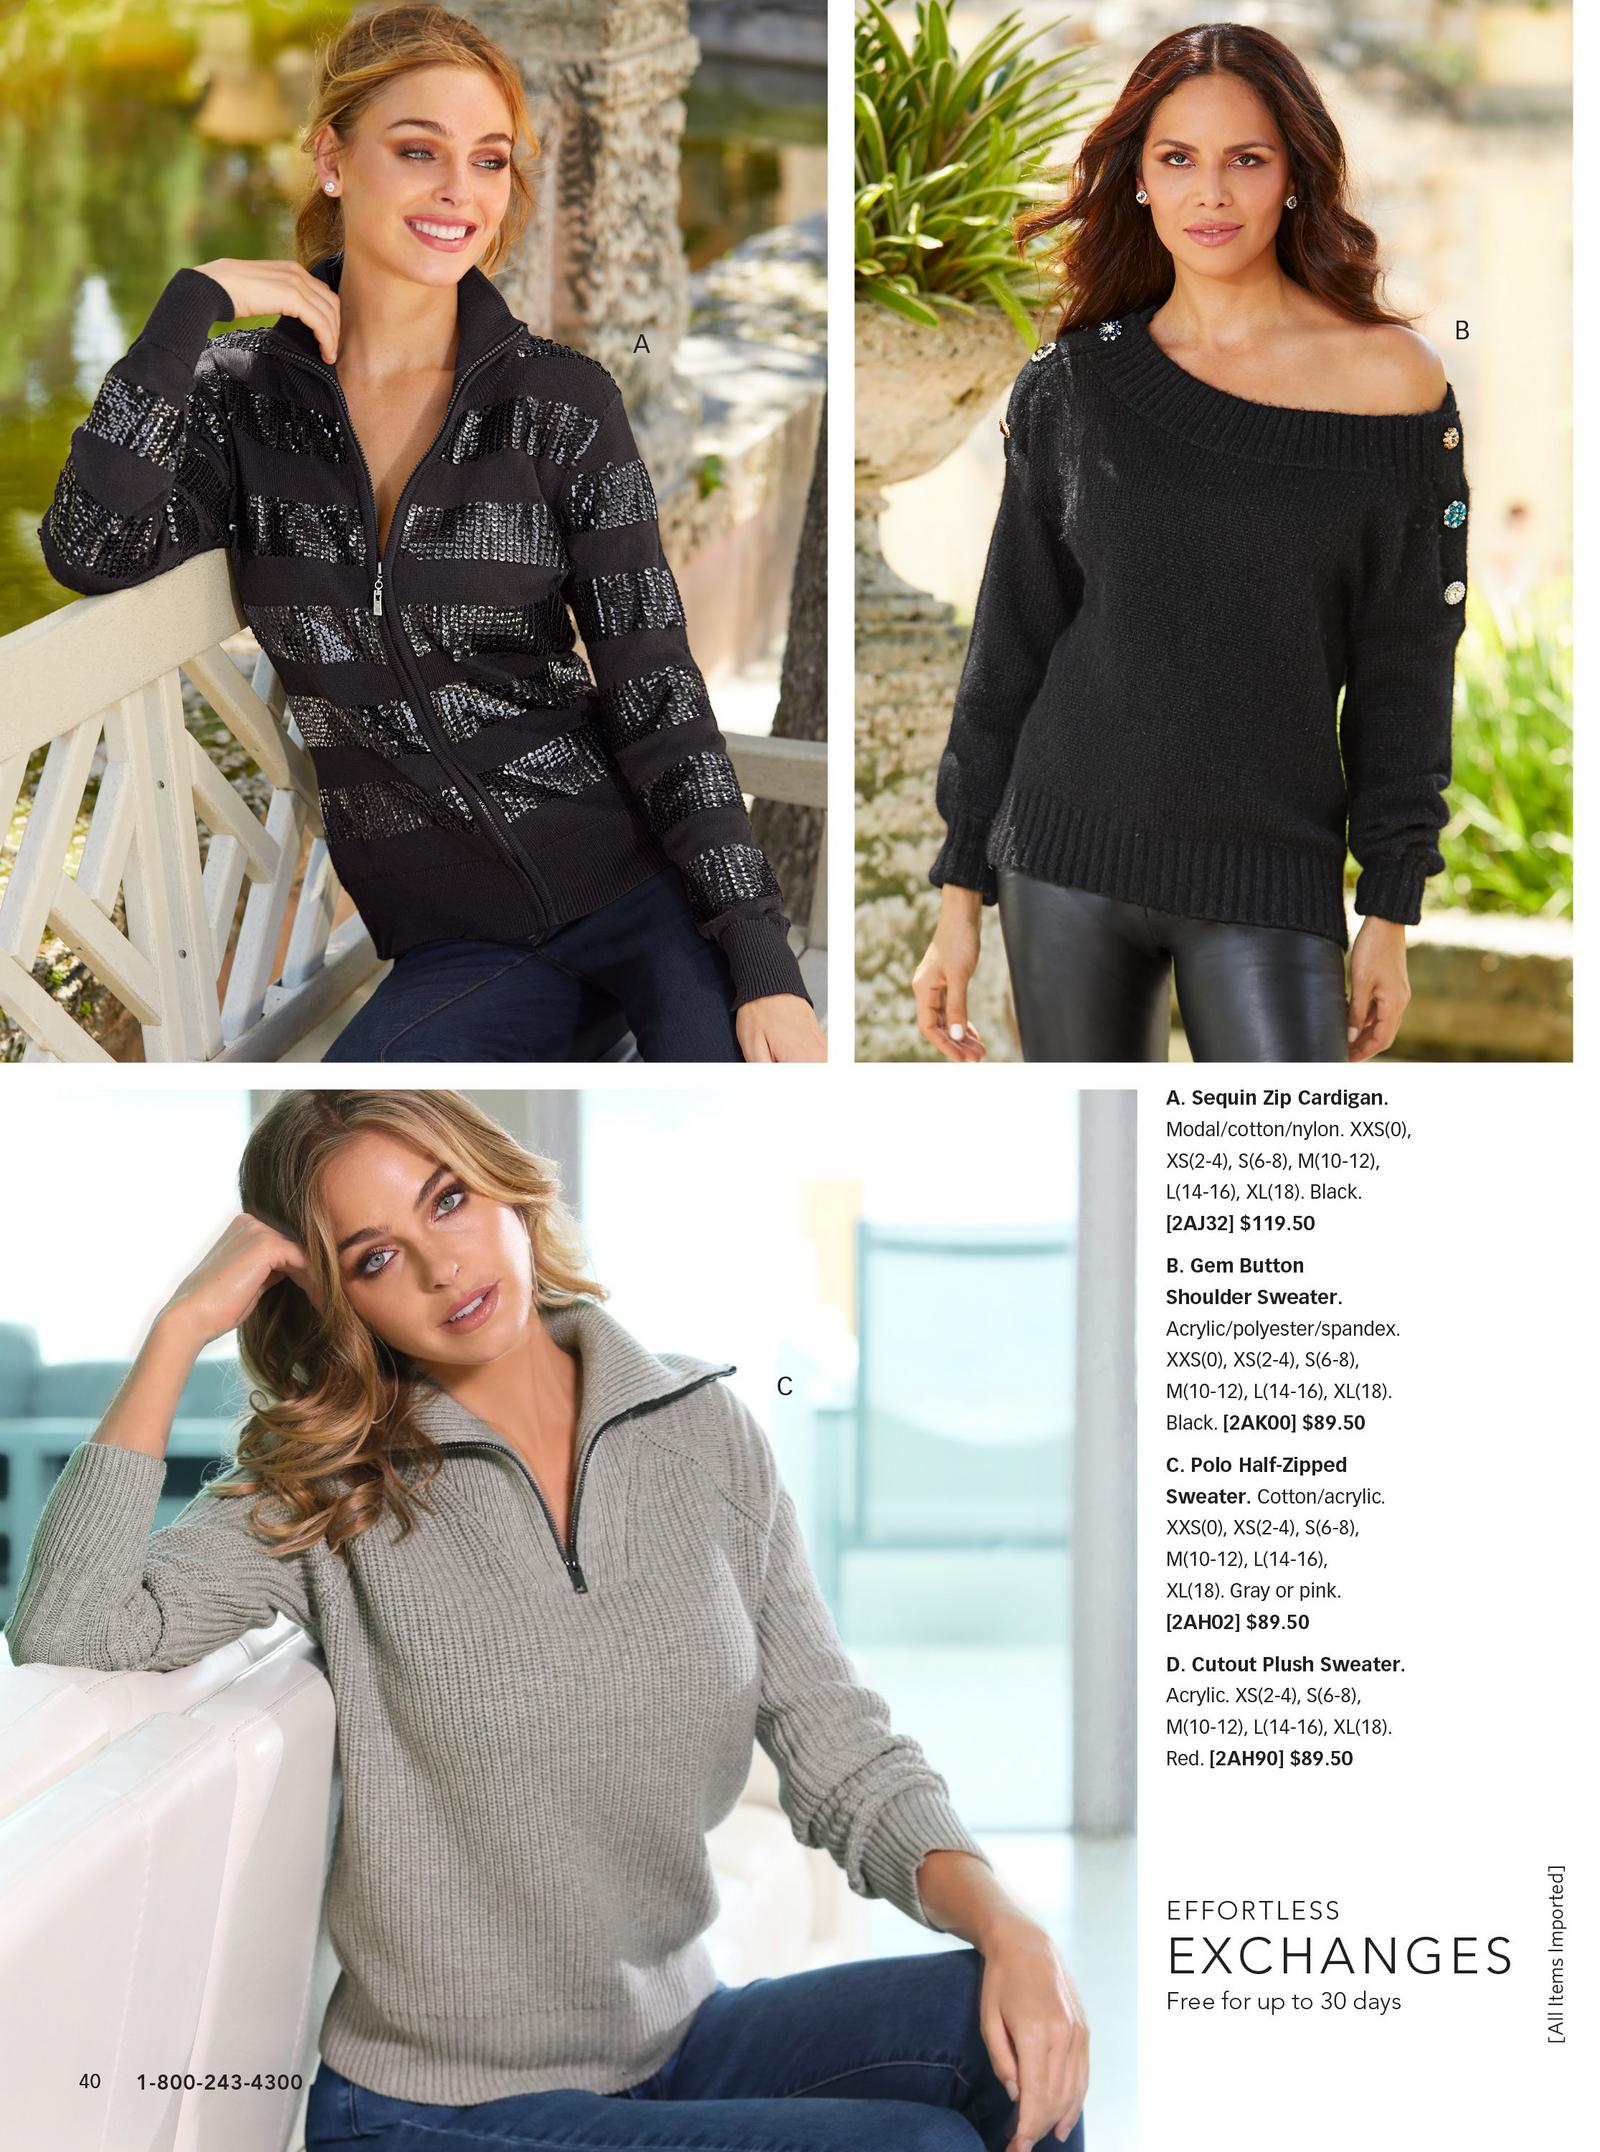 top left: sequin zip cardigan in black. top right: black sweater with gem buttons lining the arms. bottom: grey polo half-zip sweater.